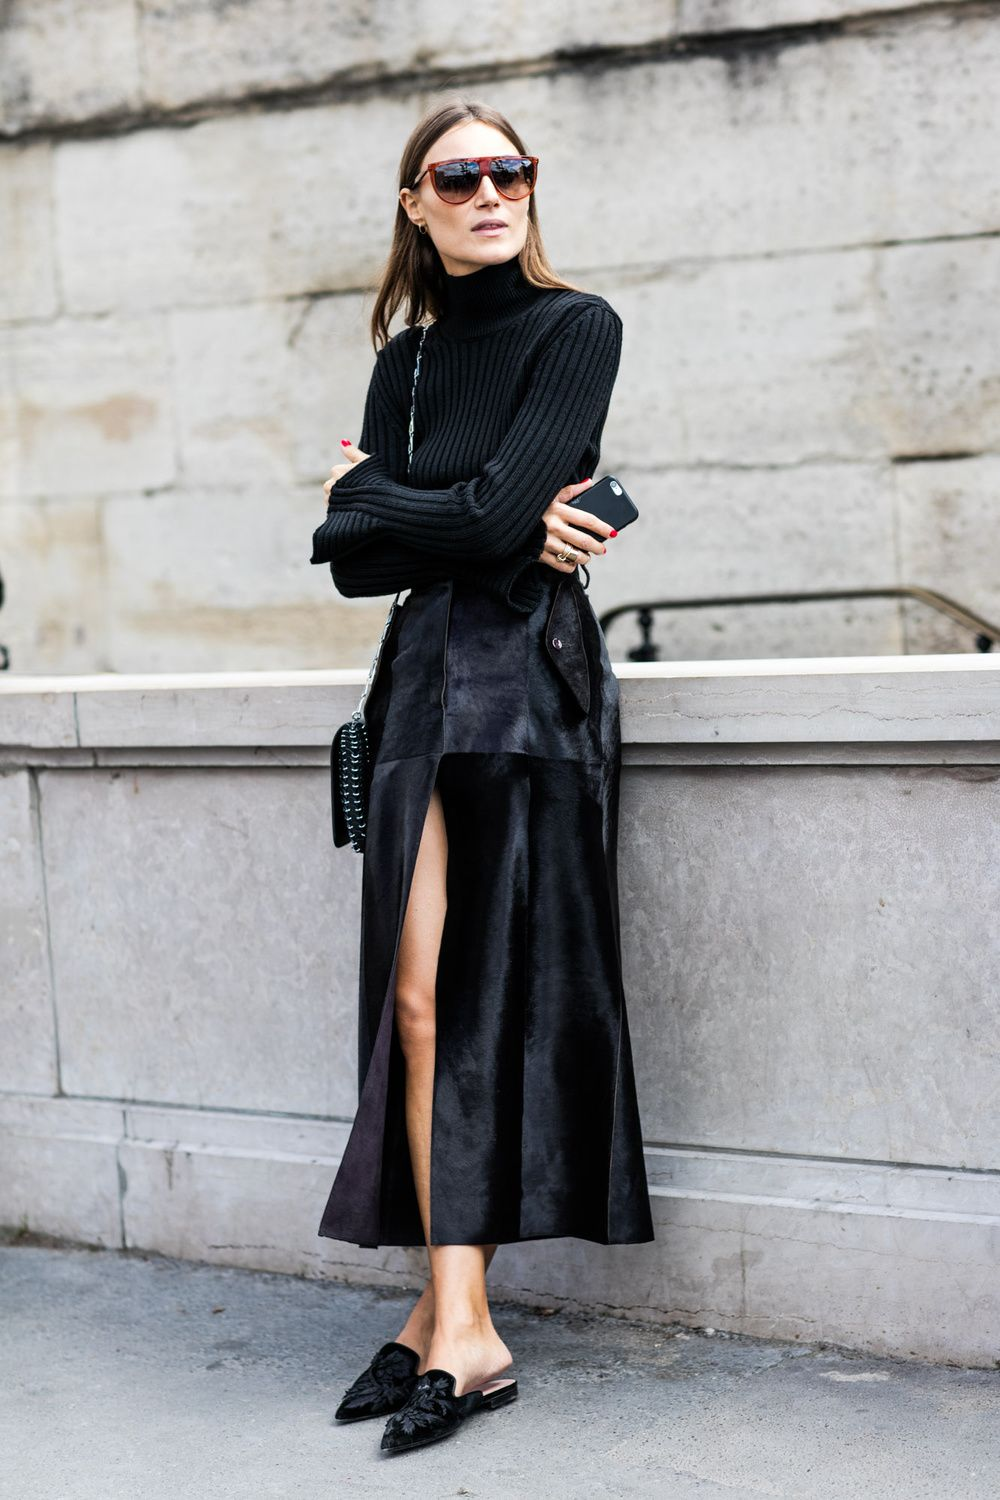 2017 fashion week dates - The Street Style That S Inspiring Us From Paris Fashion Week Spring Summer 2017 Pictures